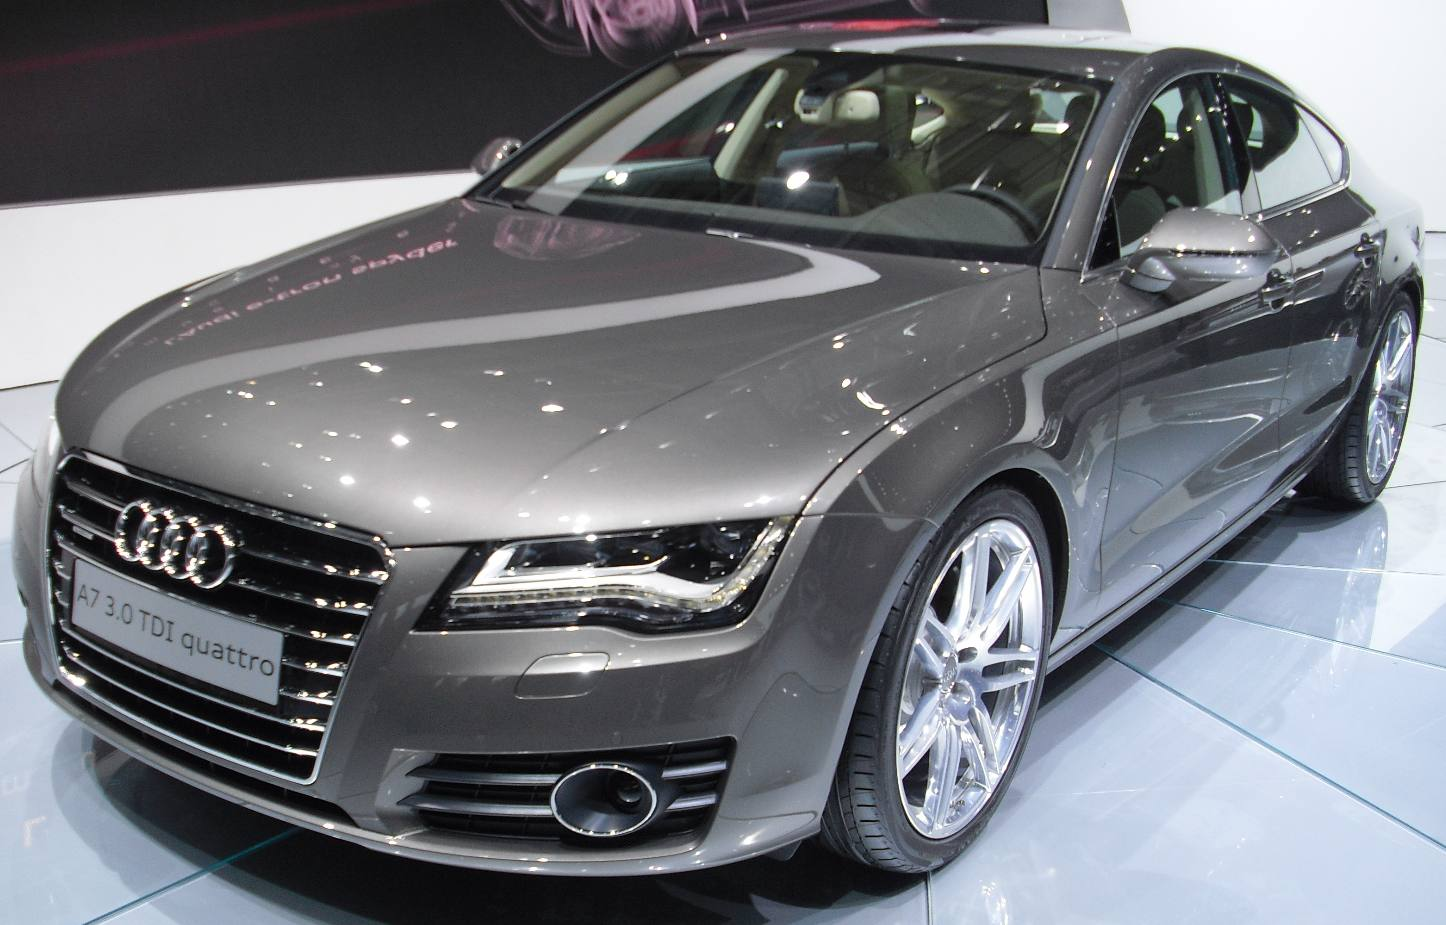 audi a7 sportback 3 0 tdi quattro s tronic 180 kw 245 ps s line neues modell export reimport. Black Bedroom Furniture Sets. Home Design Ideas